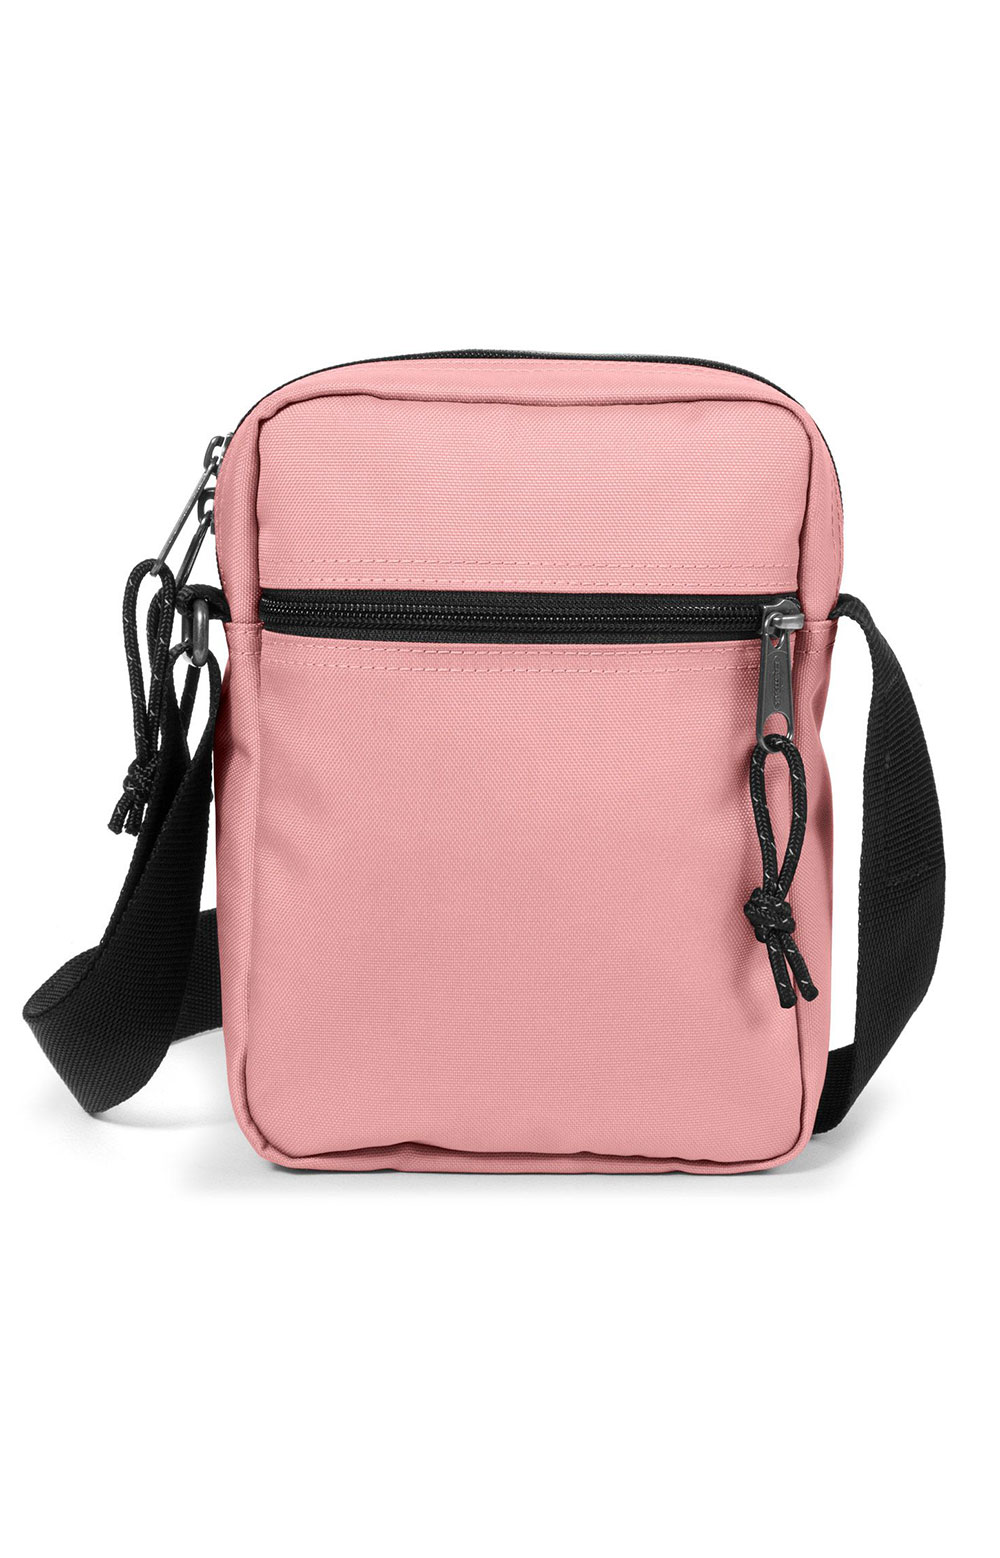 The One Bag - Serene Pink 3